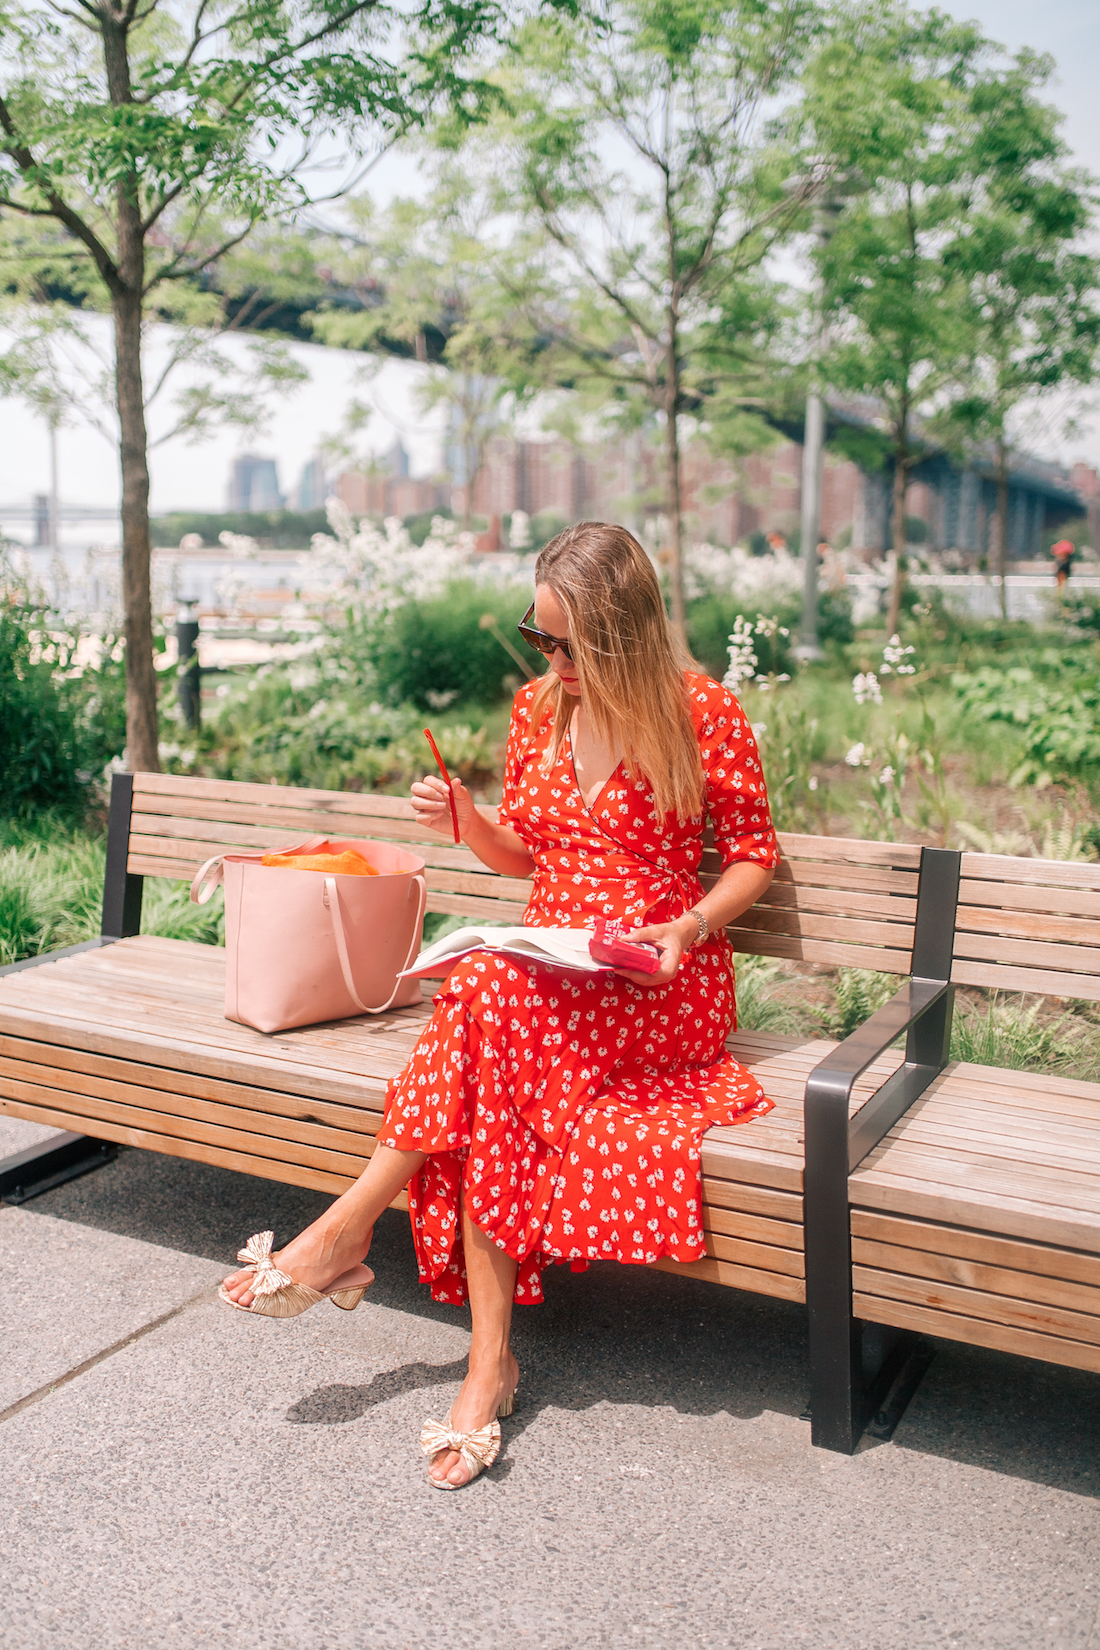 Grace Attwood is wearing a red floral dress